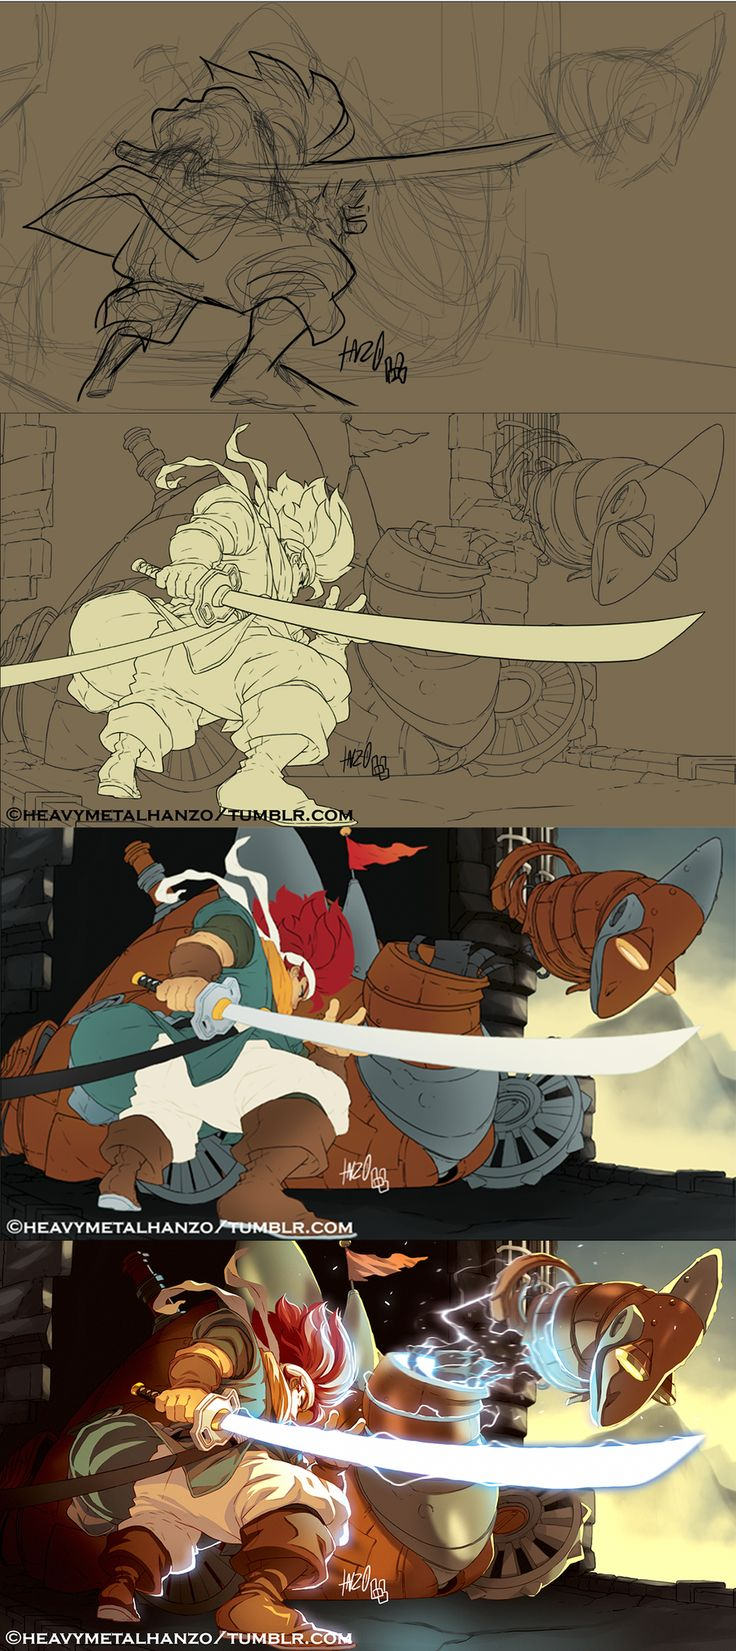 http://www.deviantart.com/art/Chrono-Trigger-Crono-Versus-the-Dragon-tutorial-563142607